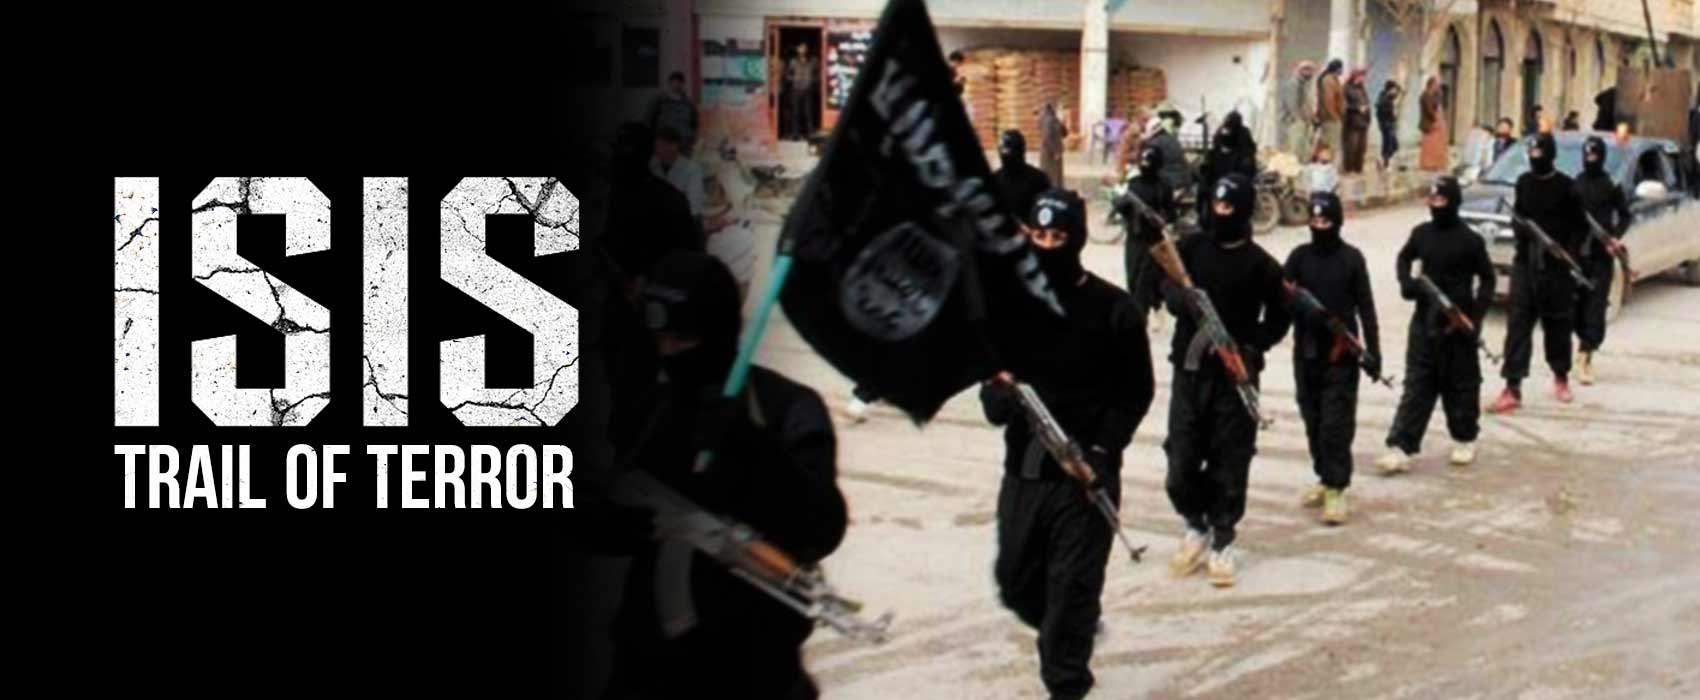 ISIS launches App